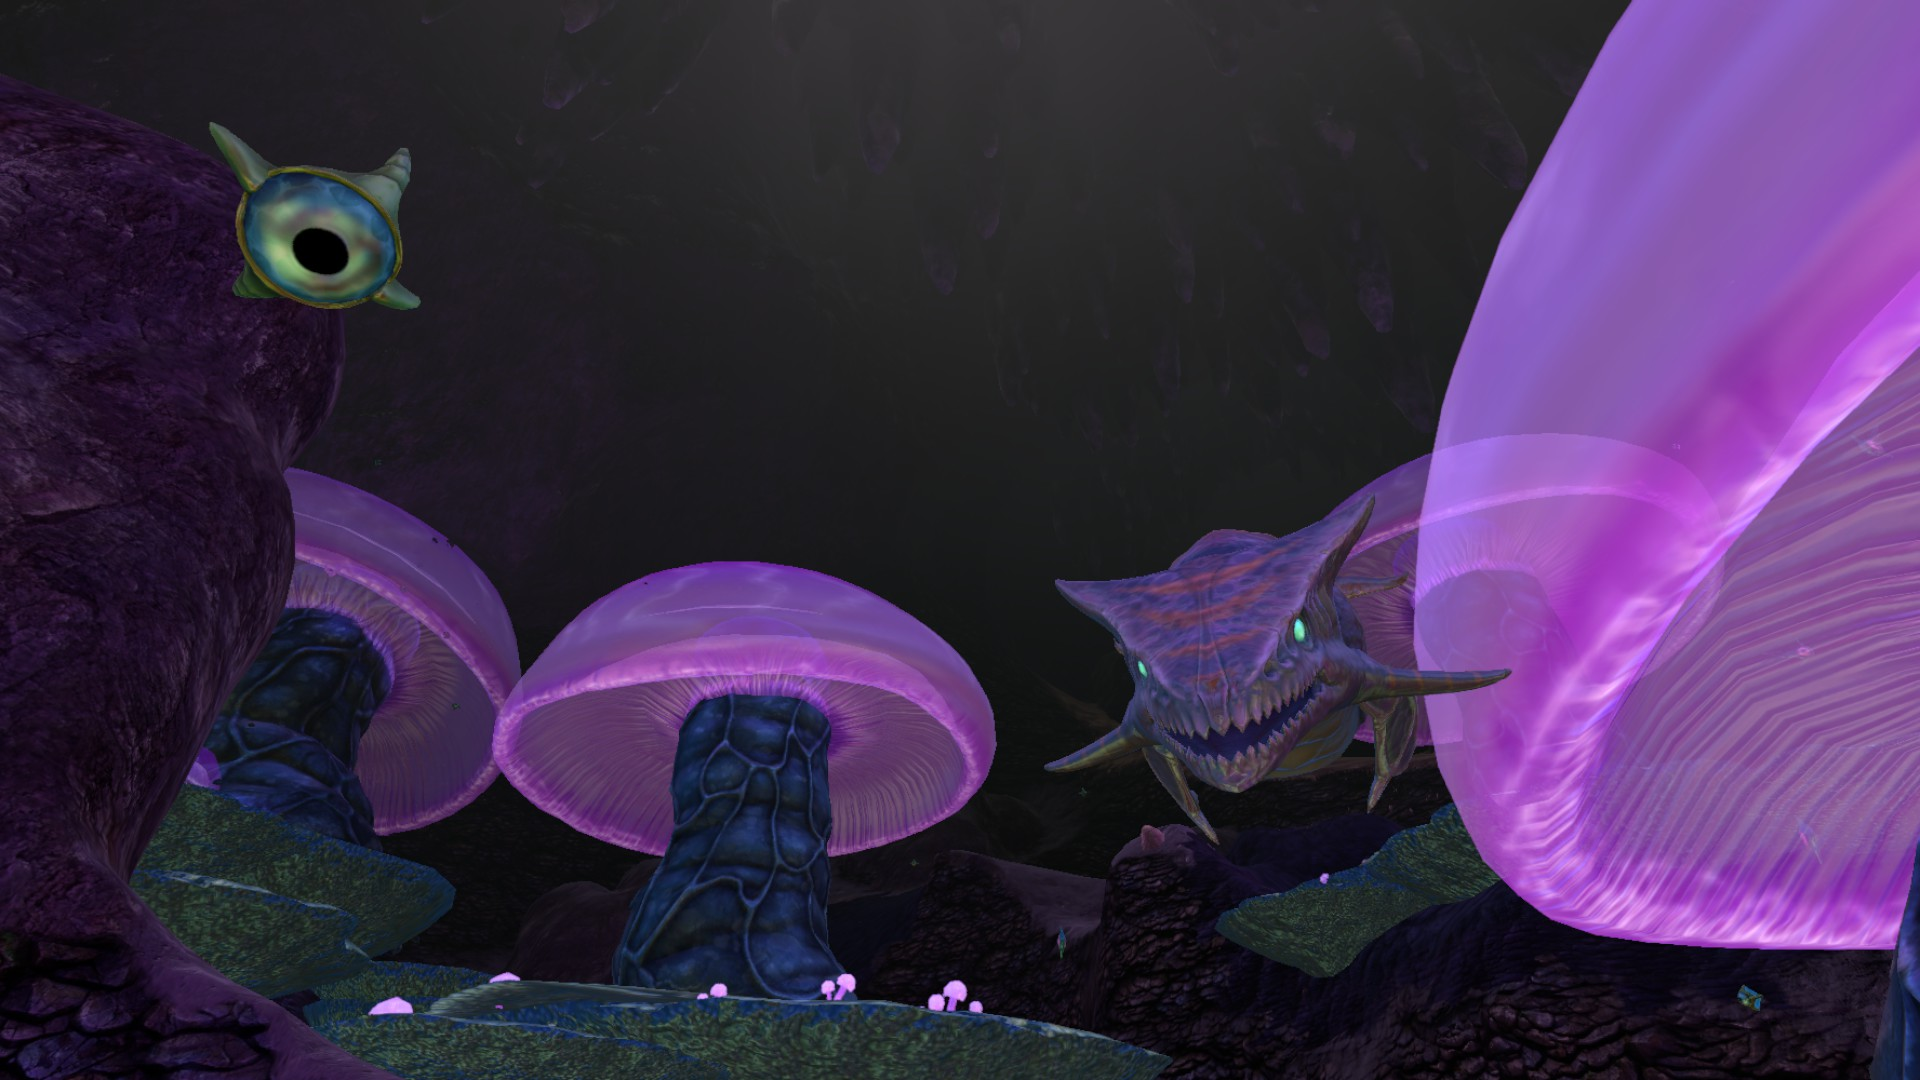 Image jelly shroom caves 7 jpg subnautica wiki for Feed and grow fish free download full game